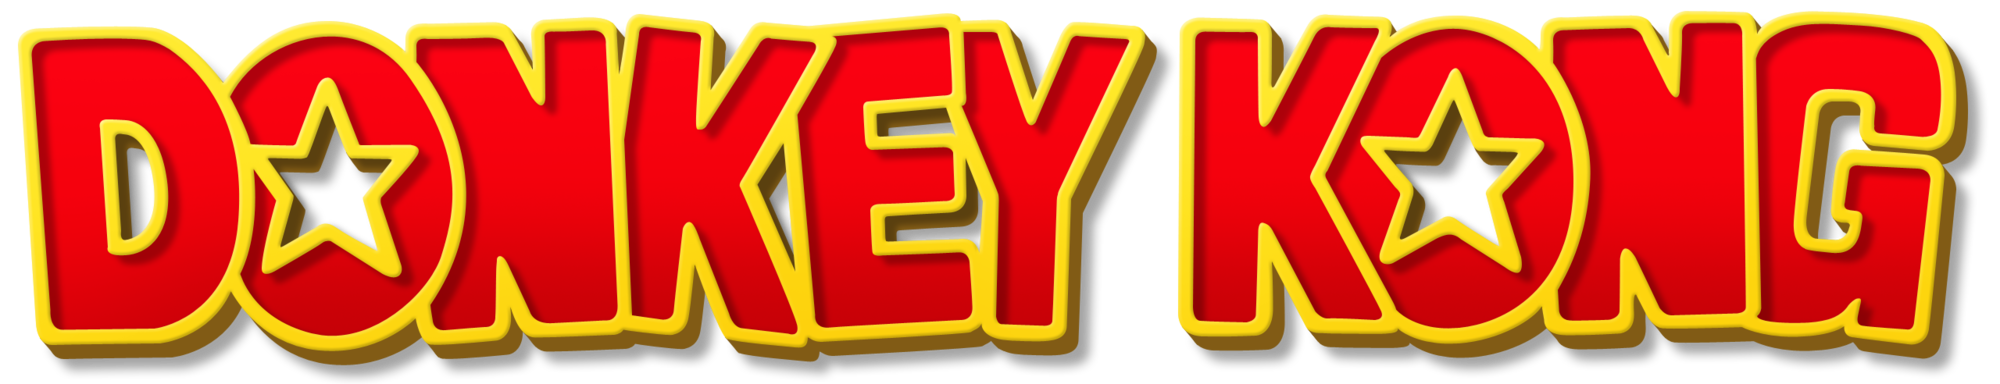 Donkey kong country logo png. Bootleggames wiki fandom powered